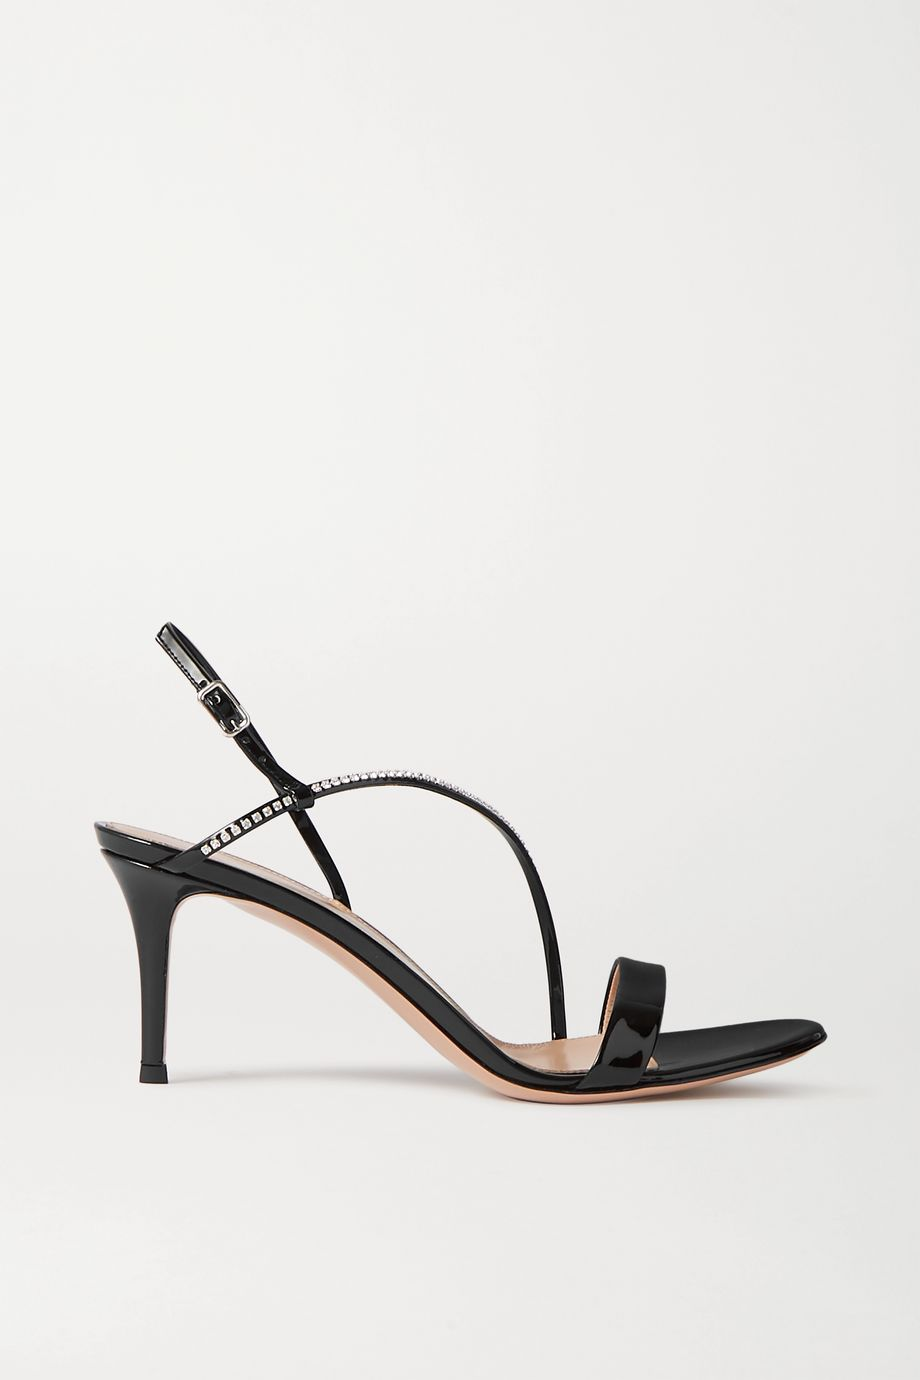 Gianvito Rossi Manhattan 70 crystal-embellished patent-leather sandals